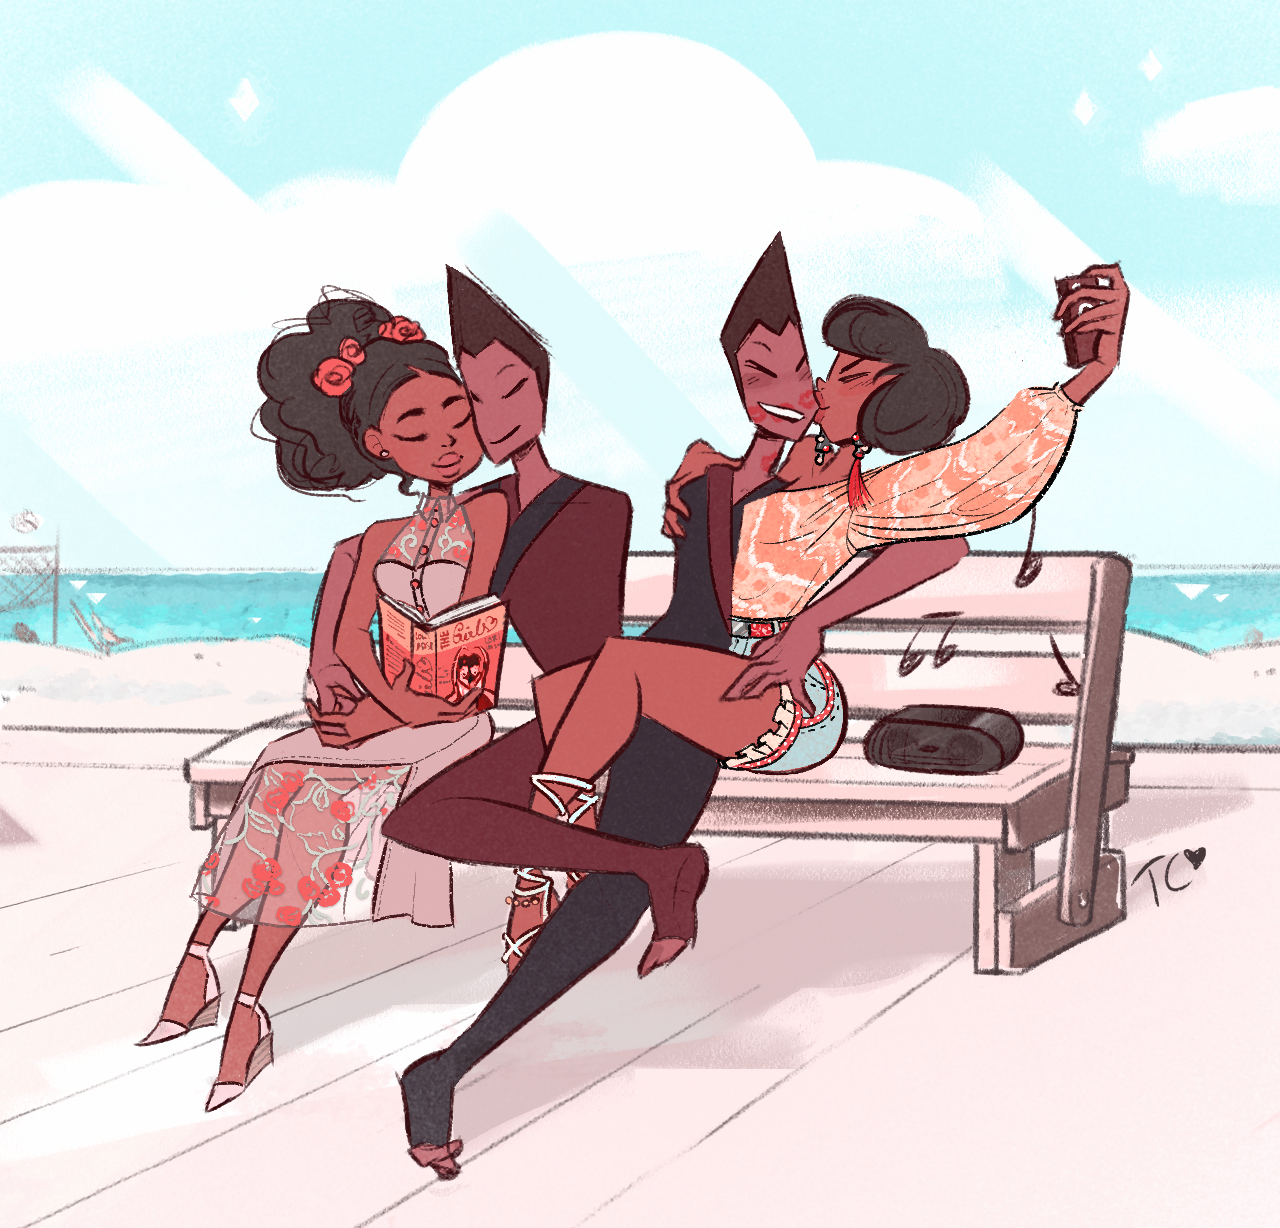 Summer double date! Summer double date!! 👯👯   Saw some crackship art of them a while back and I was like AYYY 🙌😍  Too cute! All four of them are gorgeous souls that would definitely get along if the off-colours manage to escape to Earth 💕   |Commissions Open!|